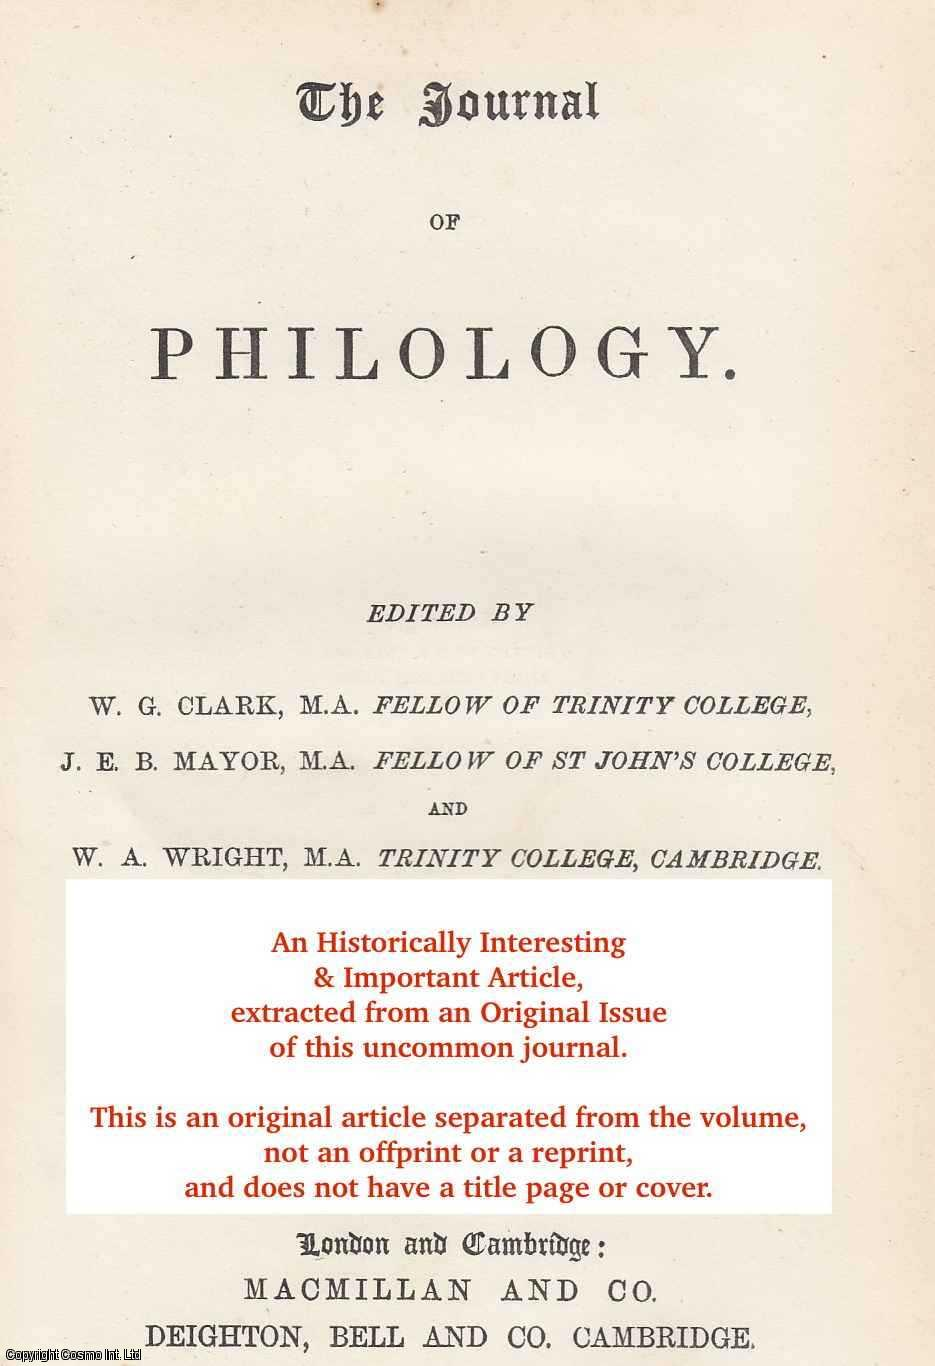 --- - Grandis. An original article from the The Journal of Philology 1877.